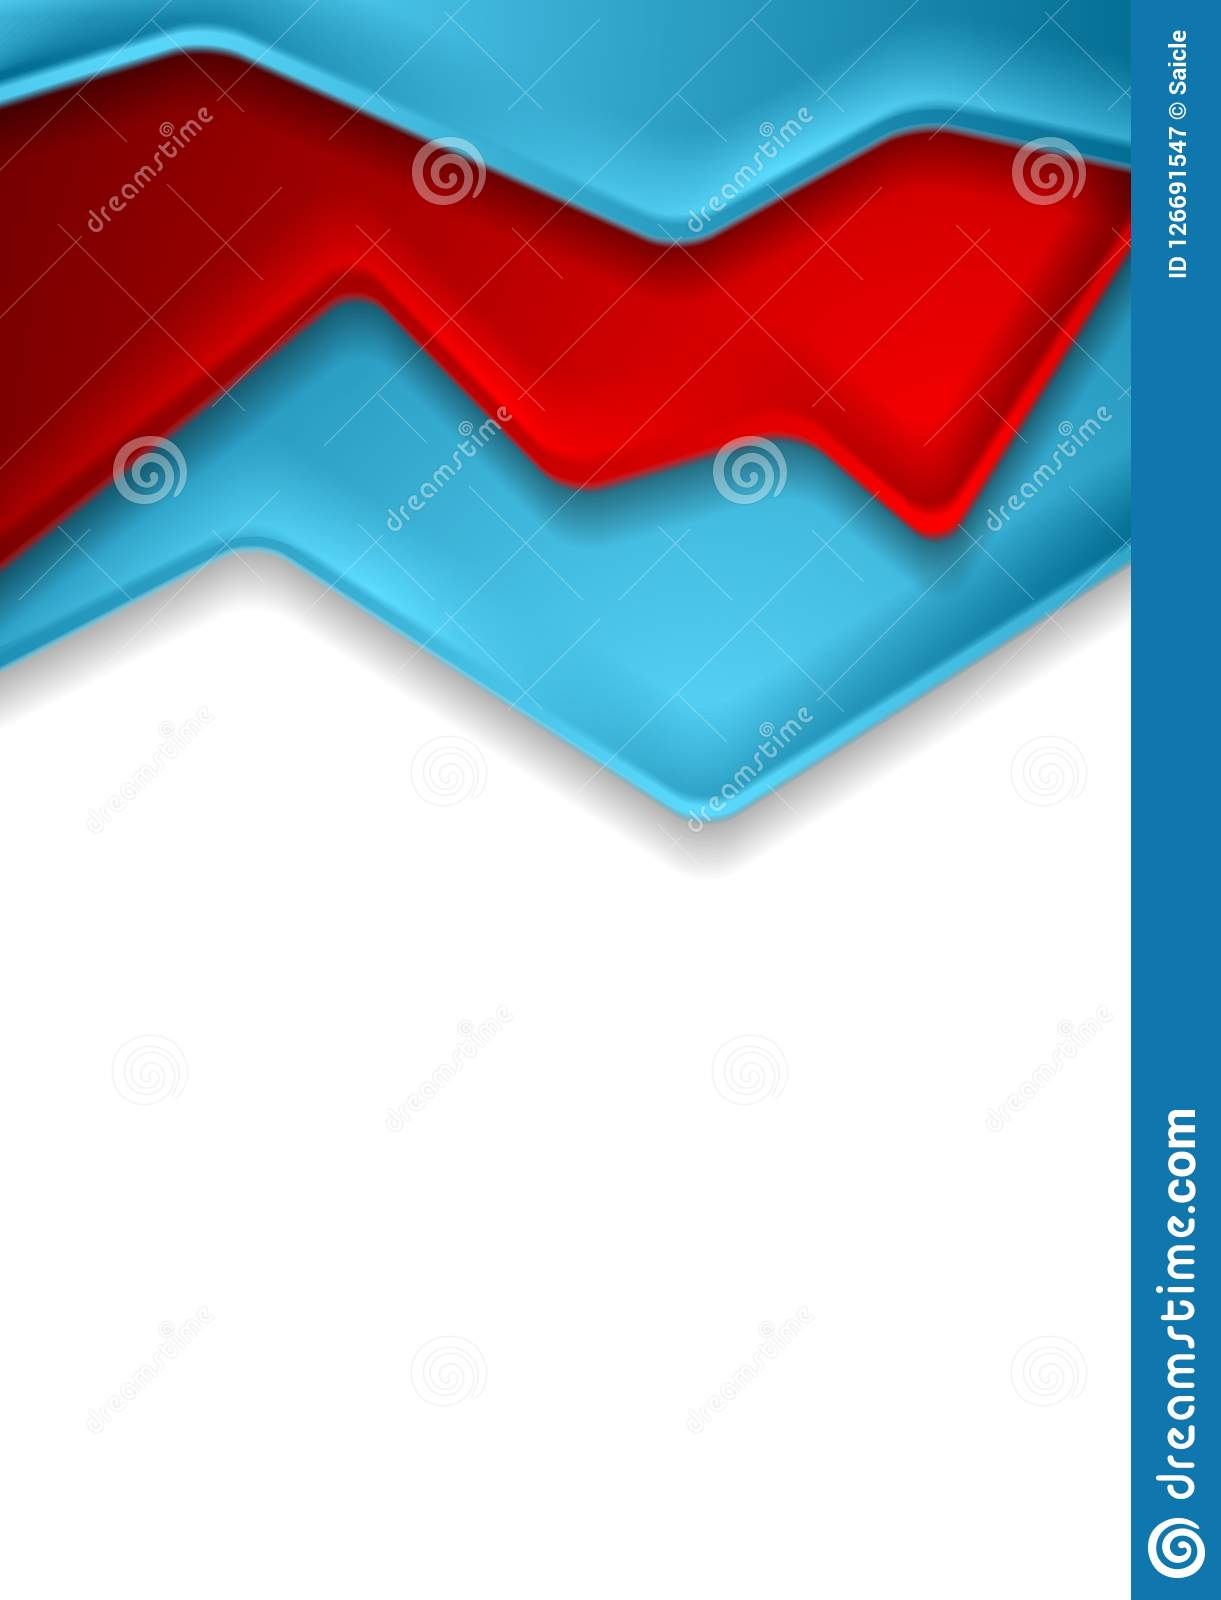 Abstract Red And Blue Corporate Contrast Background Stock